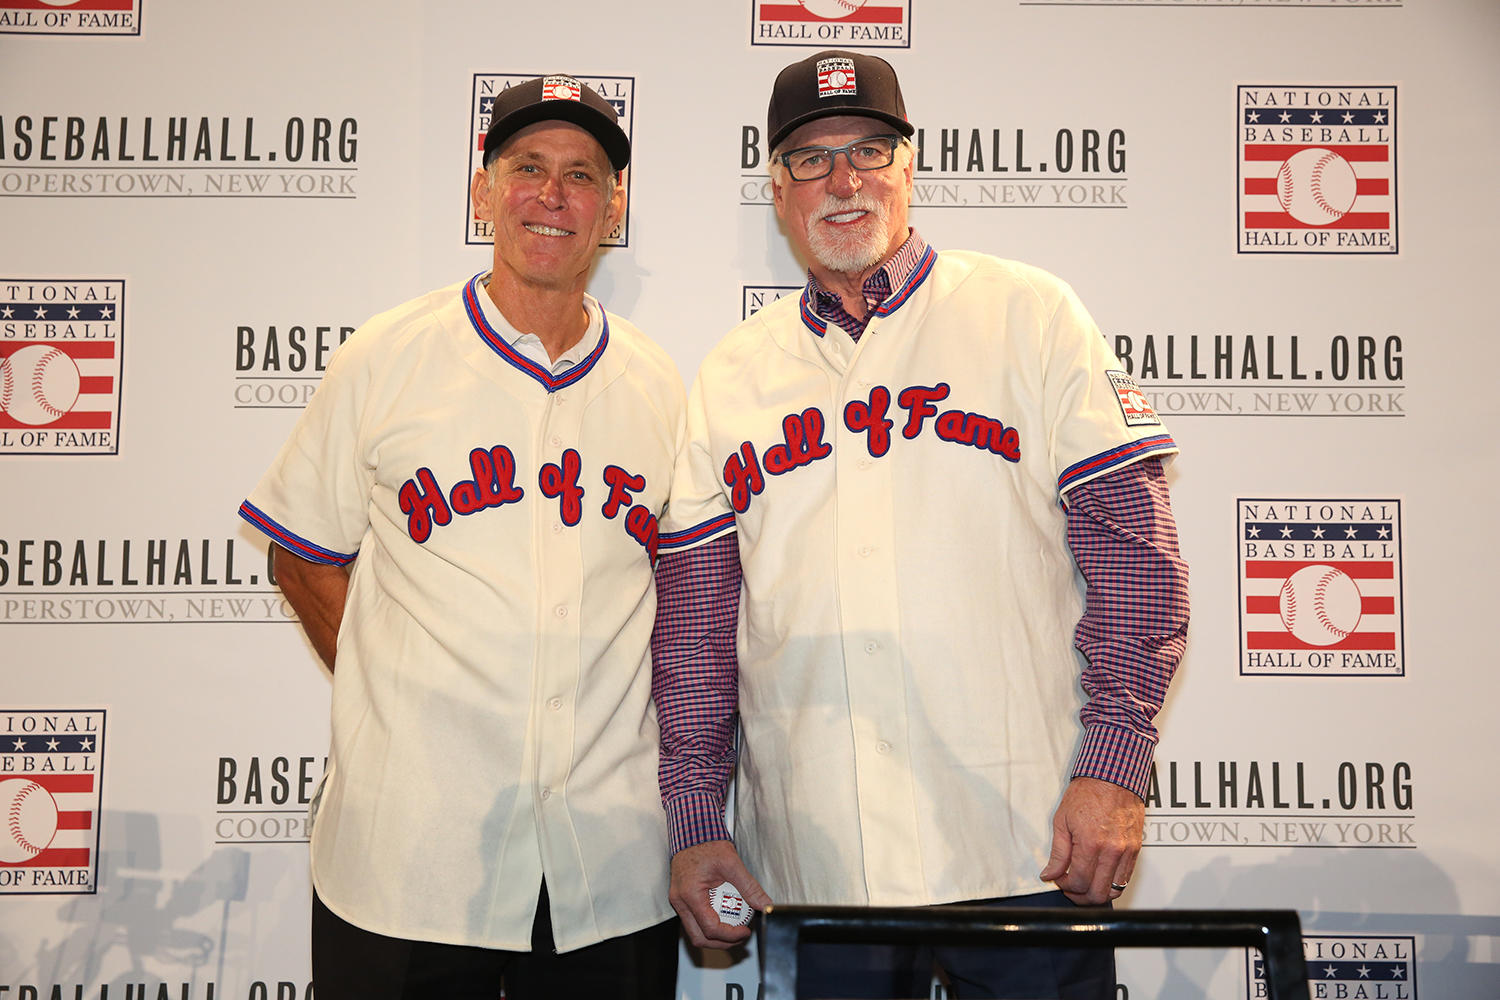 Alan Trammell and Jack Morris pose together following the Modern Baseball Era electee press conference. (Alex Trautwig/MLB Photos)